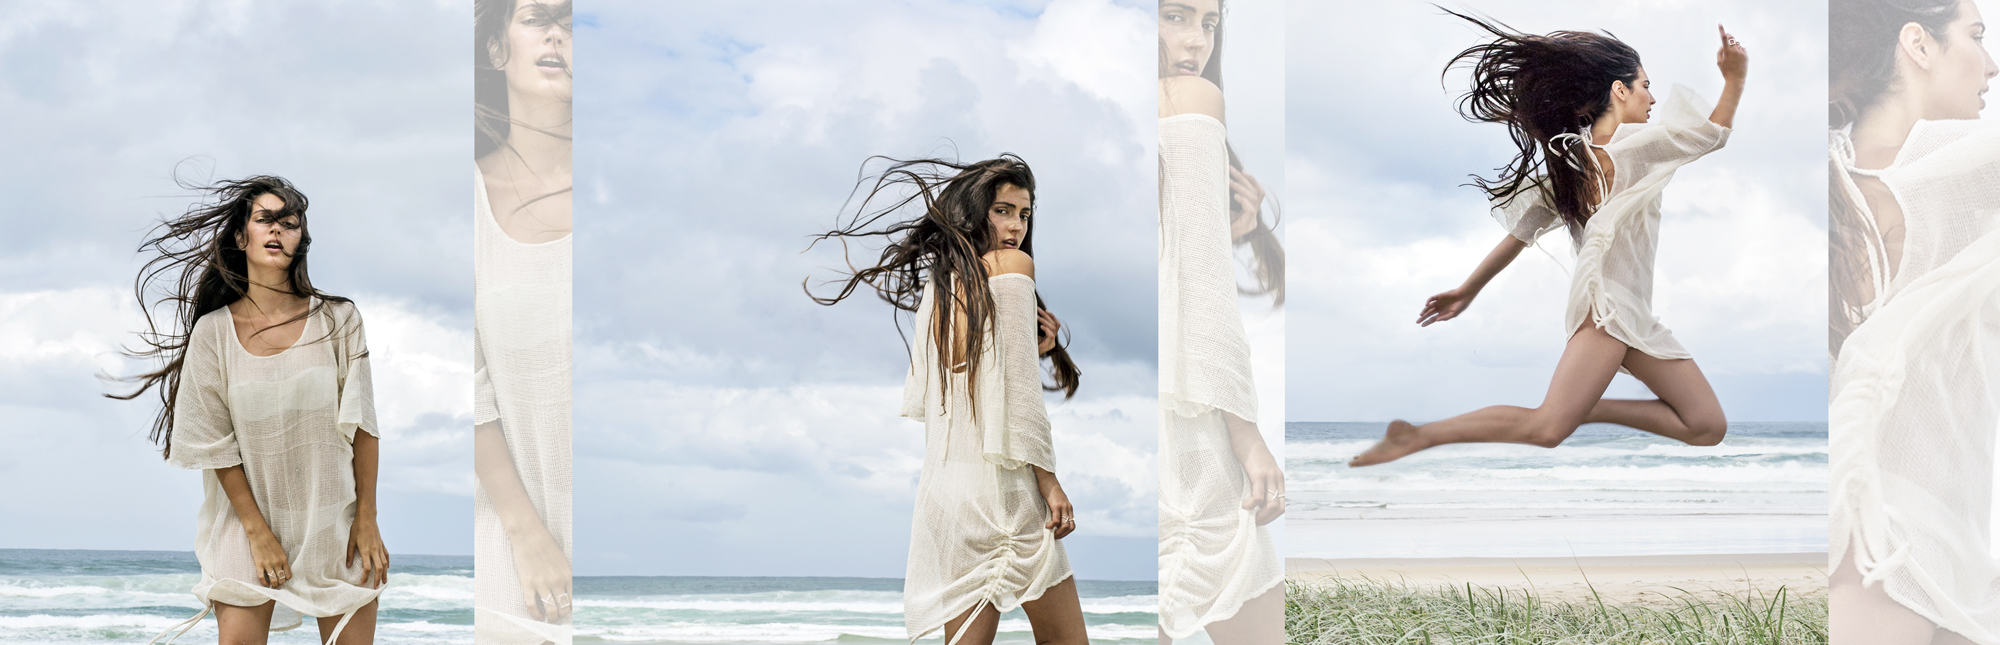 Sophie Taylor fashion beauty by donatella parisini byron bay photography